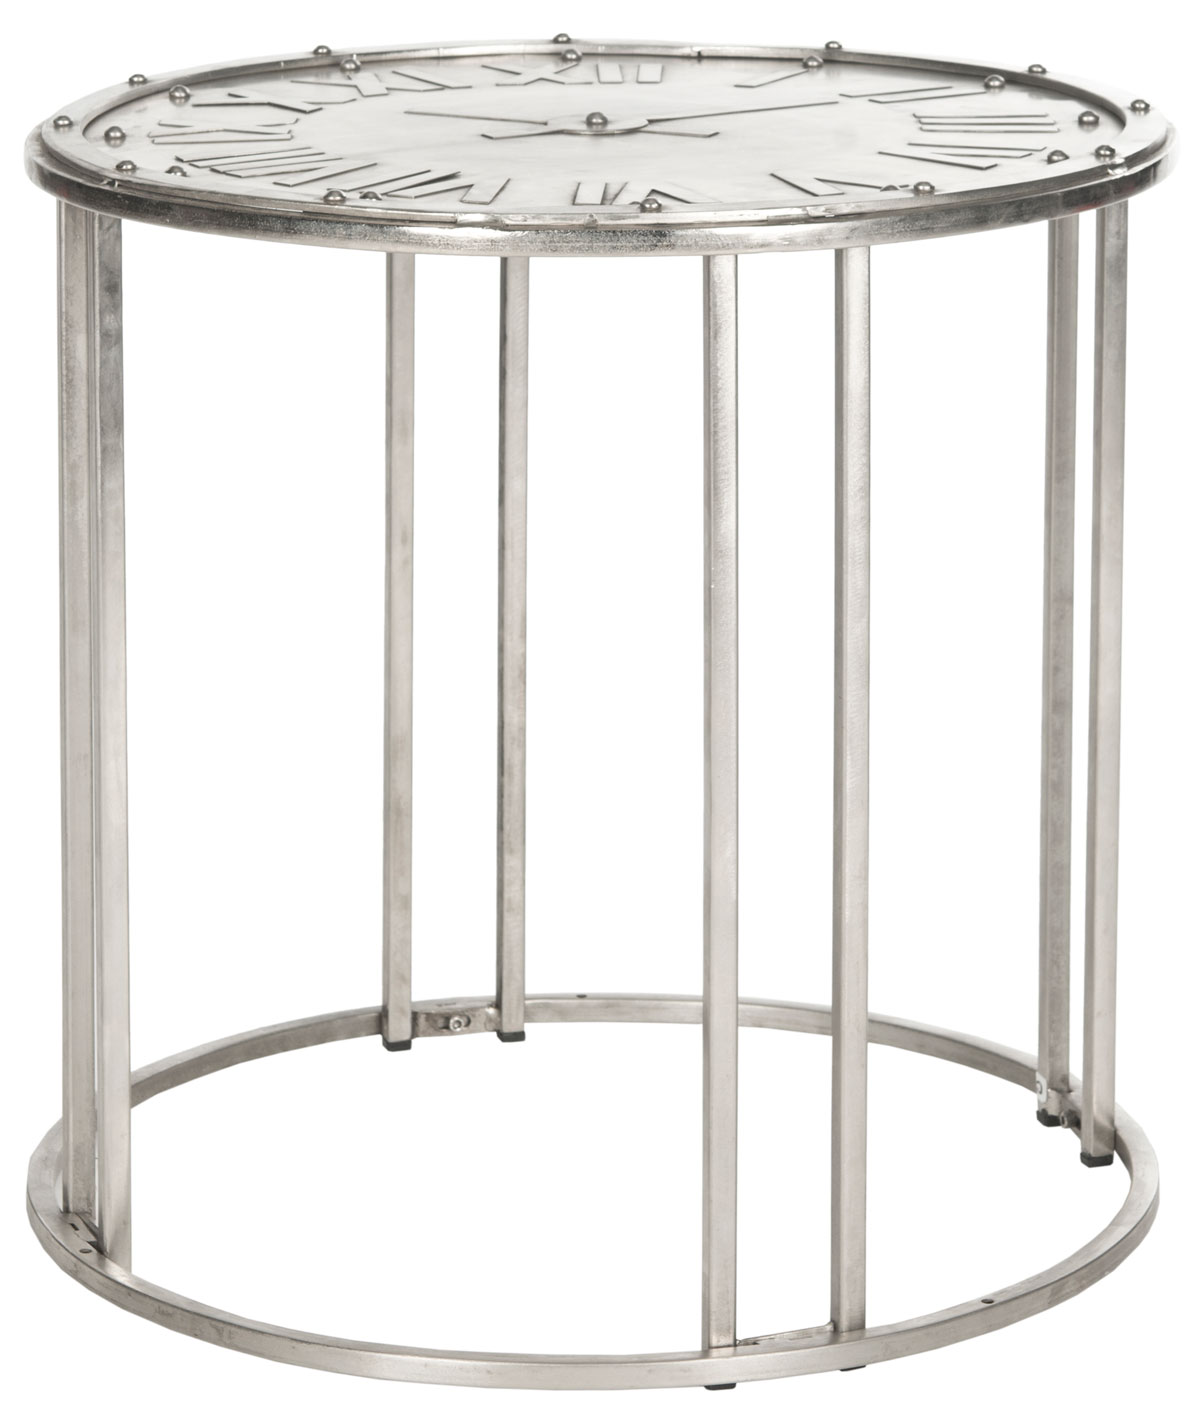 accent tables nightstands furniture safavieh end table with clock rustic wood coffee and sofa cabinet woodworking projects that sell victorian marble top round butcher block white